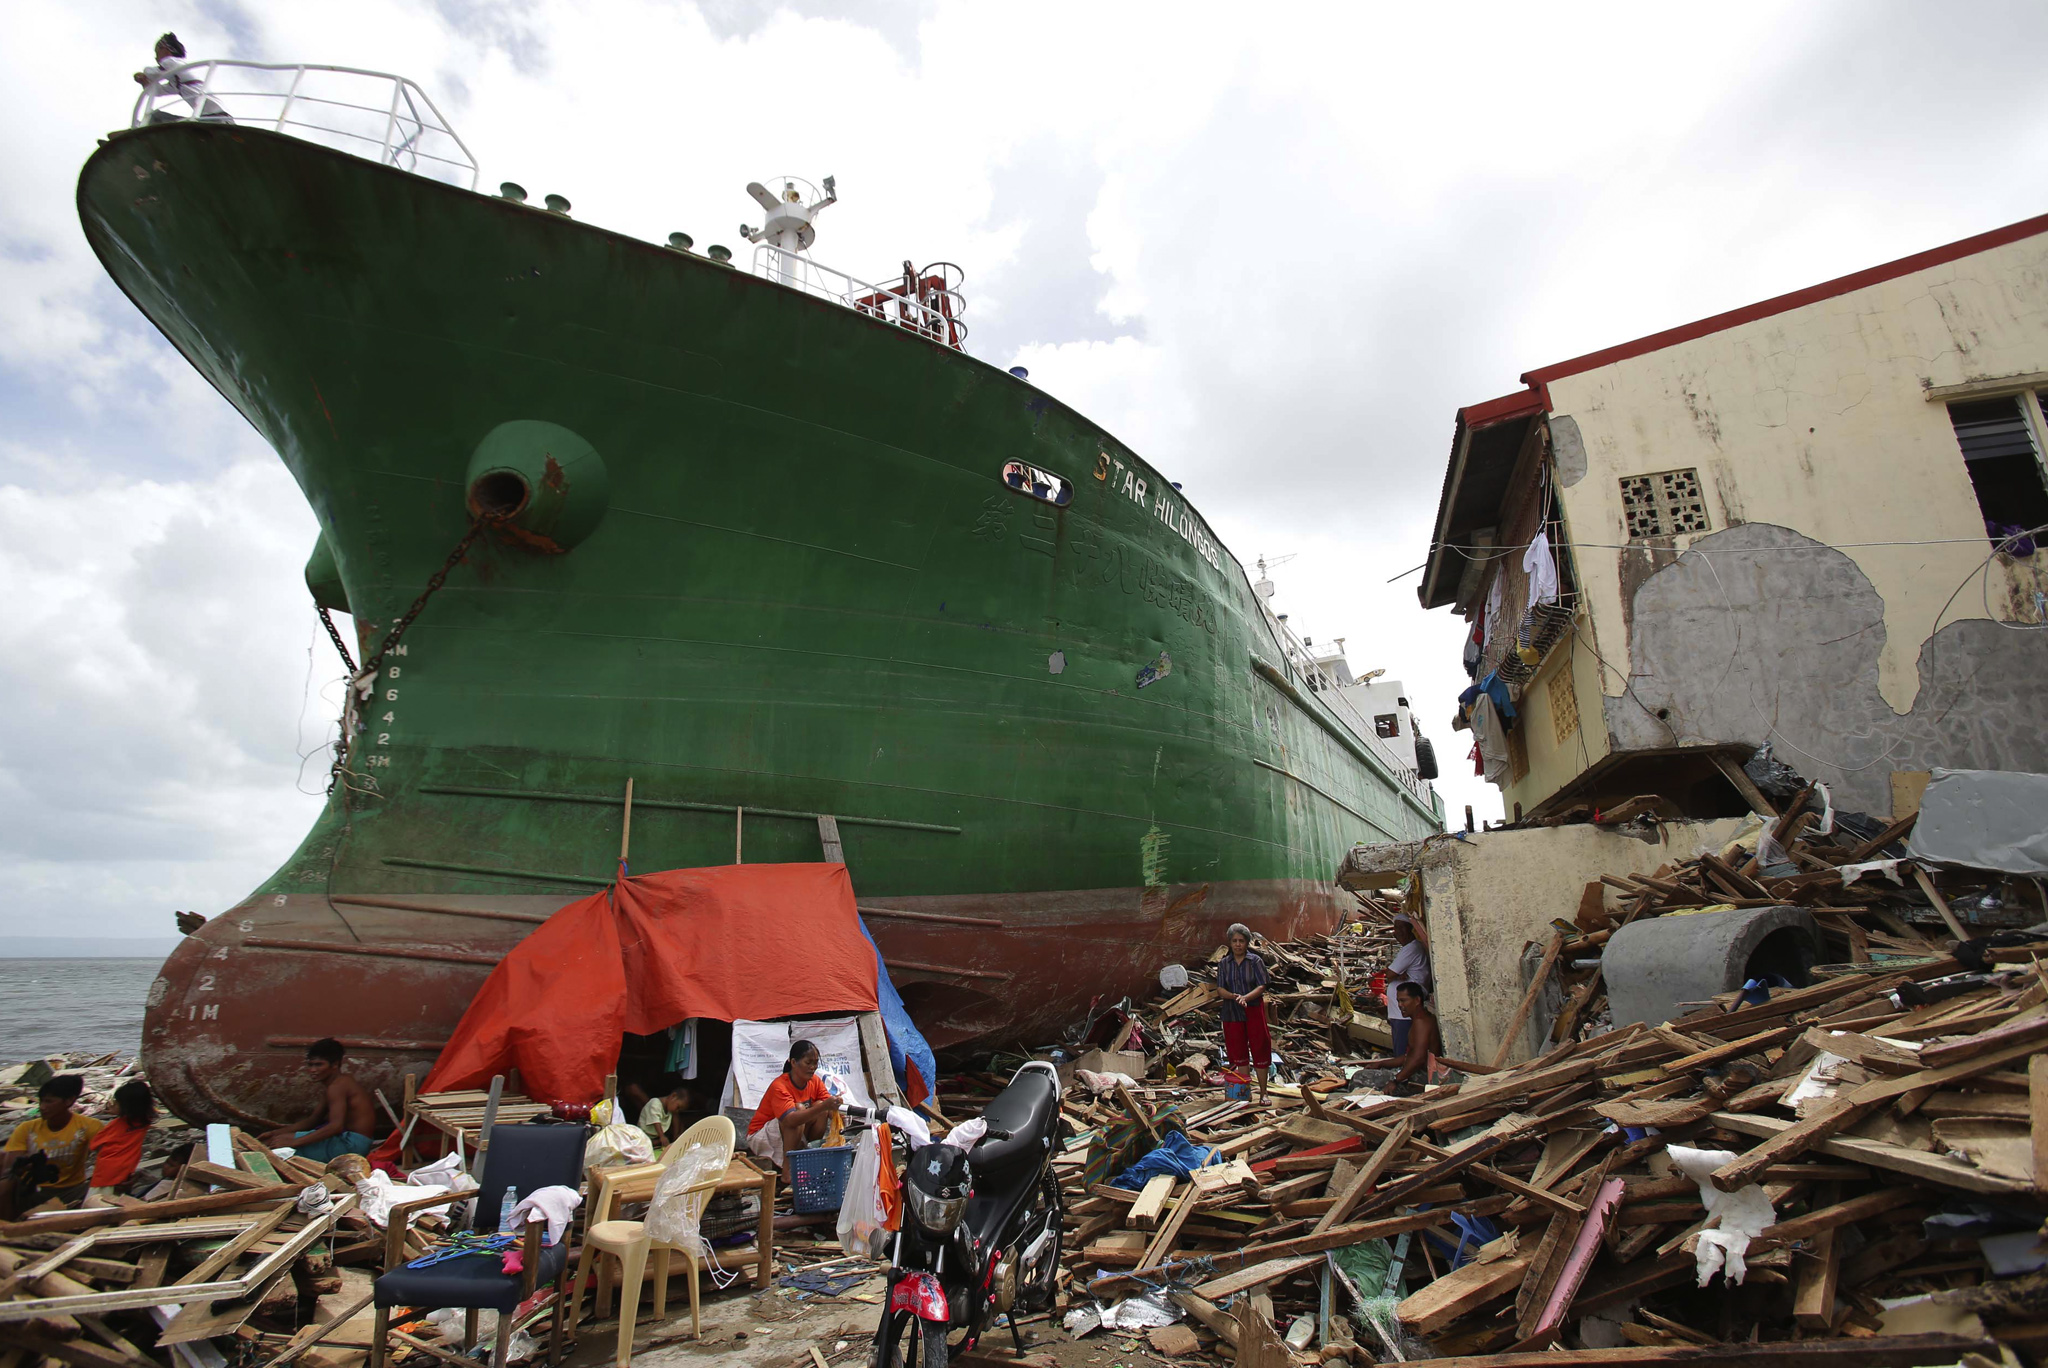 Survivors stay beside a ship that was washed ashore hitting makeshift houses near an oil depot in Tacloban city, Leyte province central Philippines.